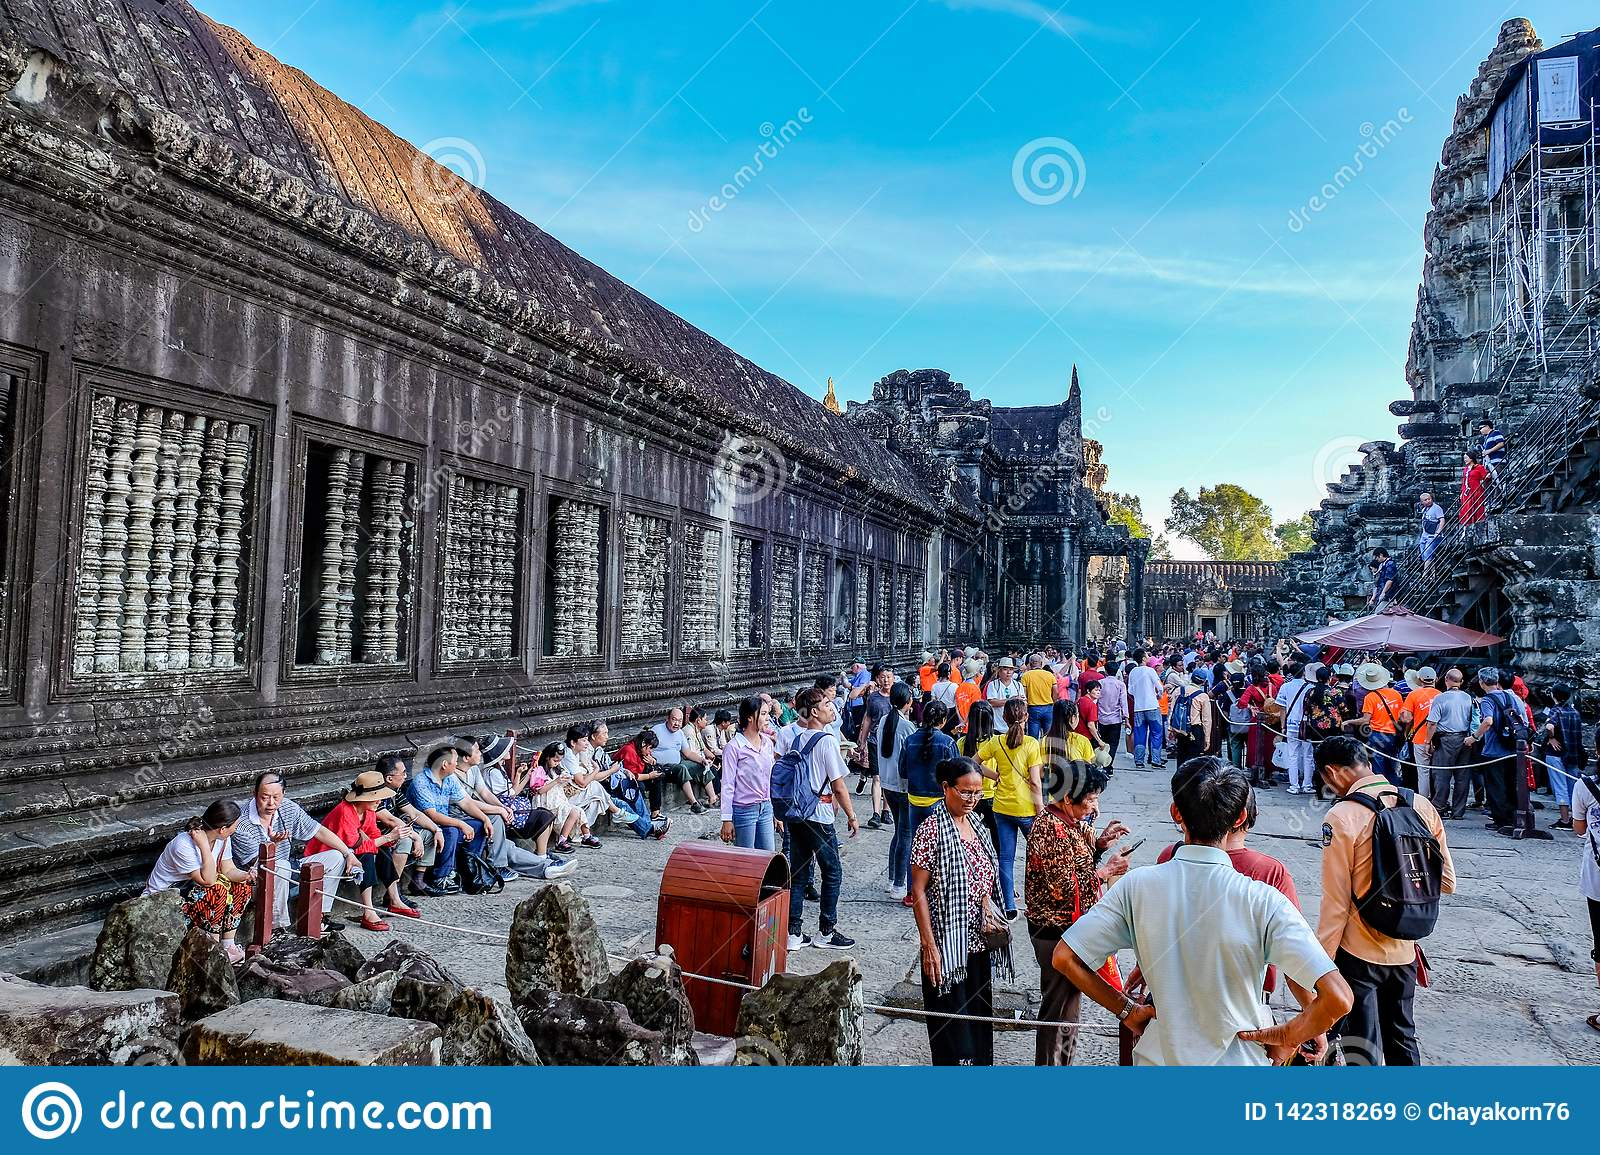 sculpture of stone carving of angkor wat editorial stock image